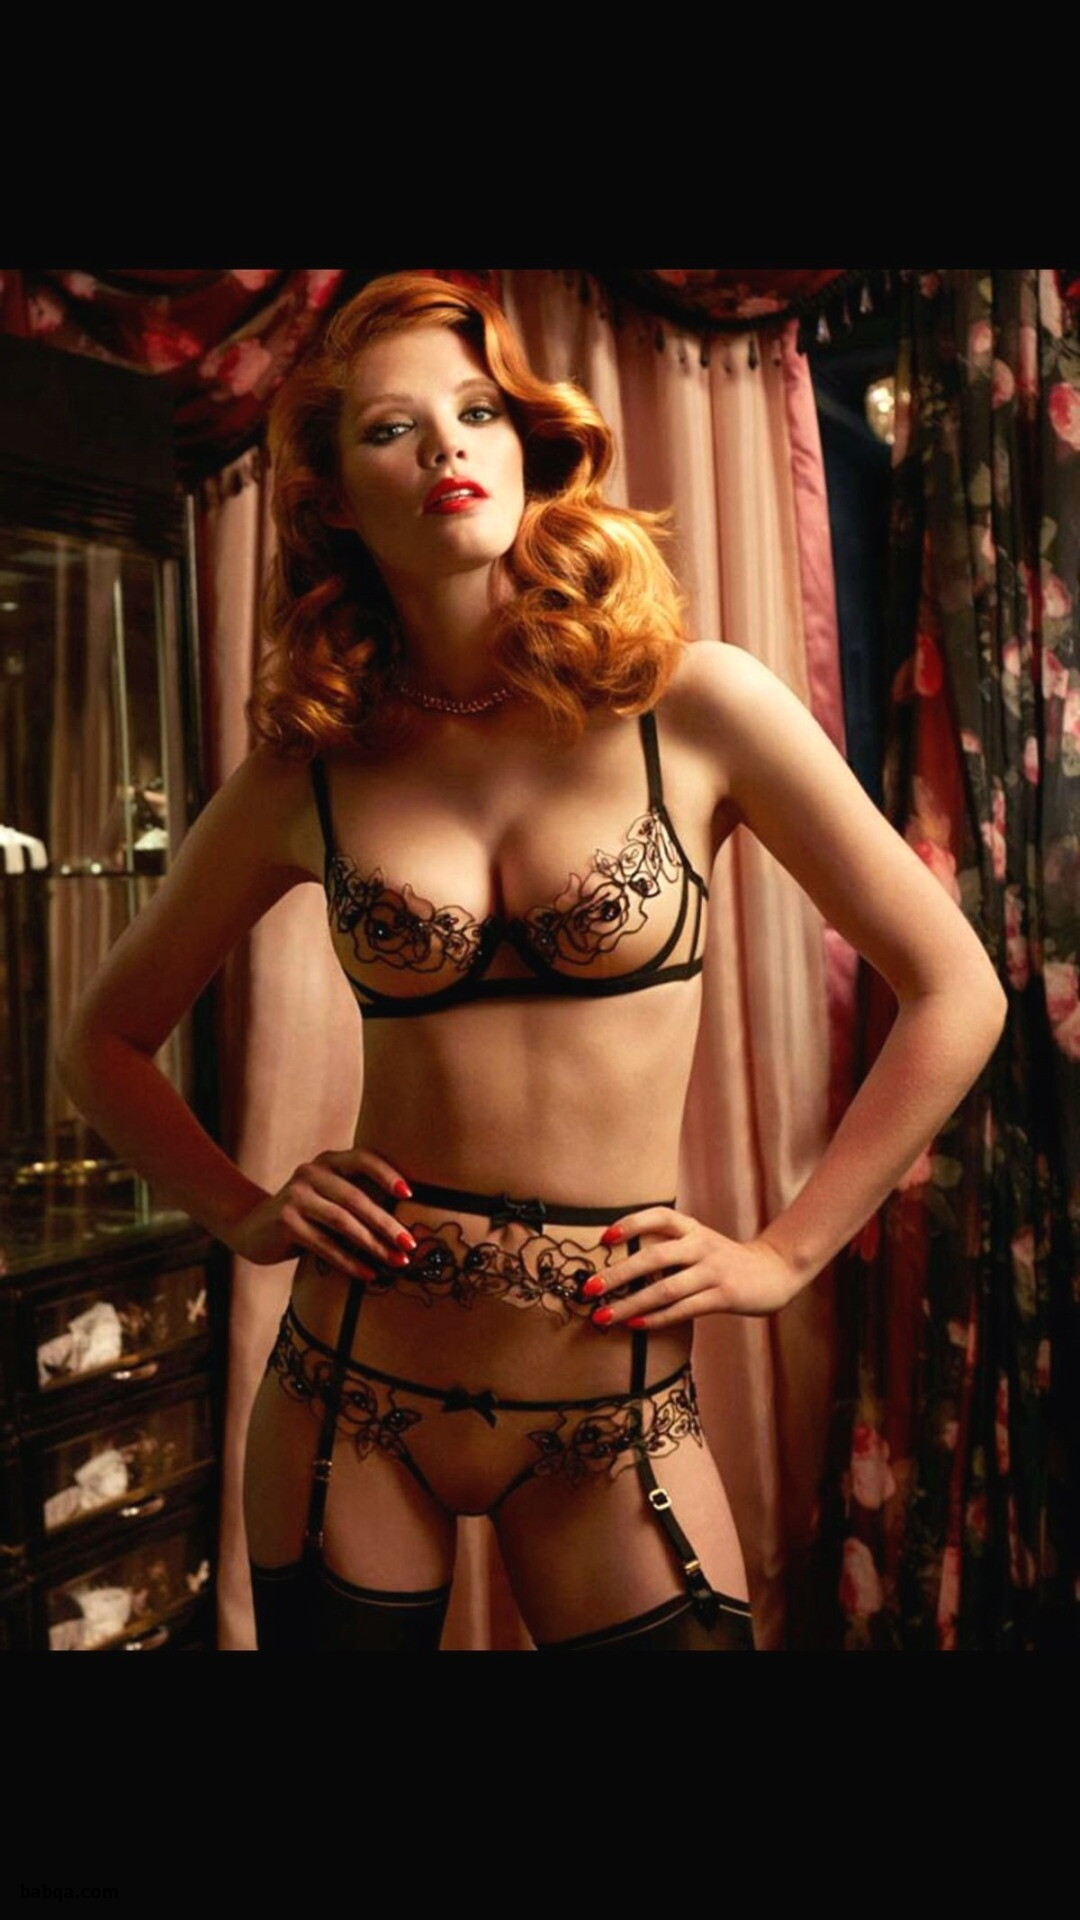 erotic lingerie videos and sexsy underwear